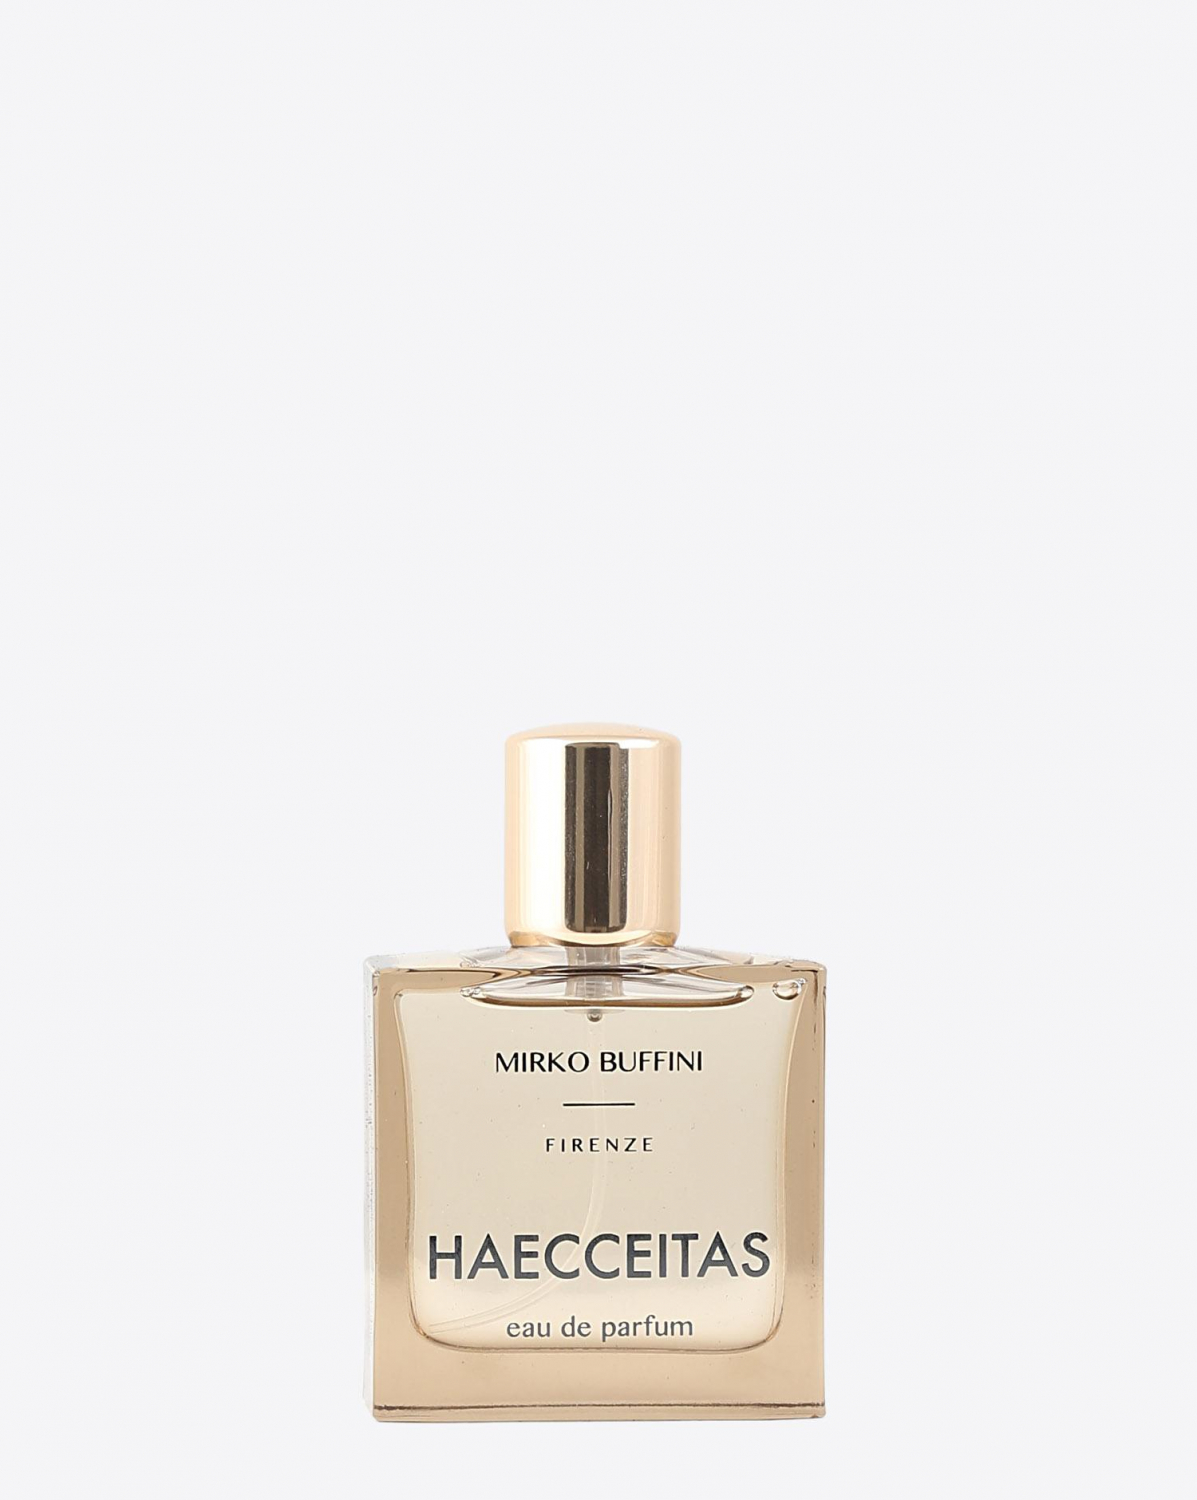 Mirko Buffini Haecceitas - 30mL